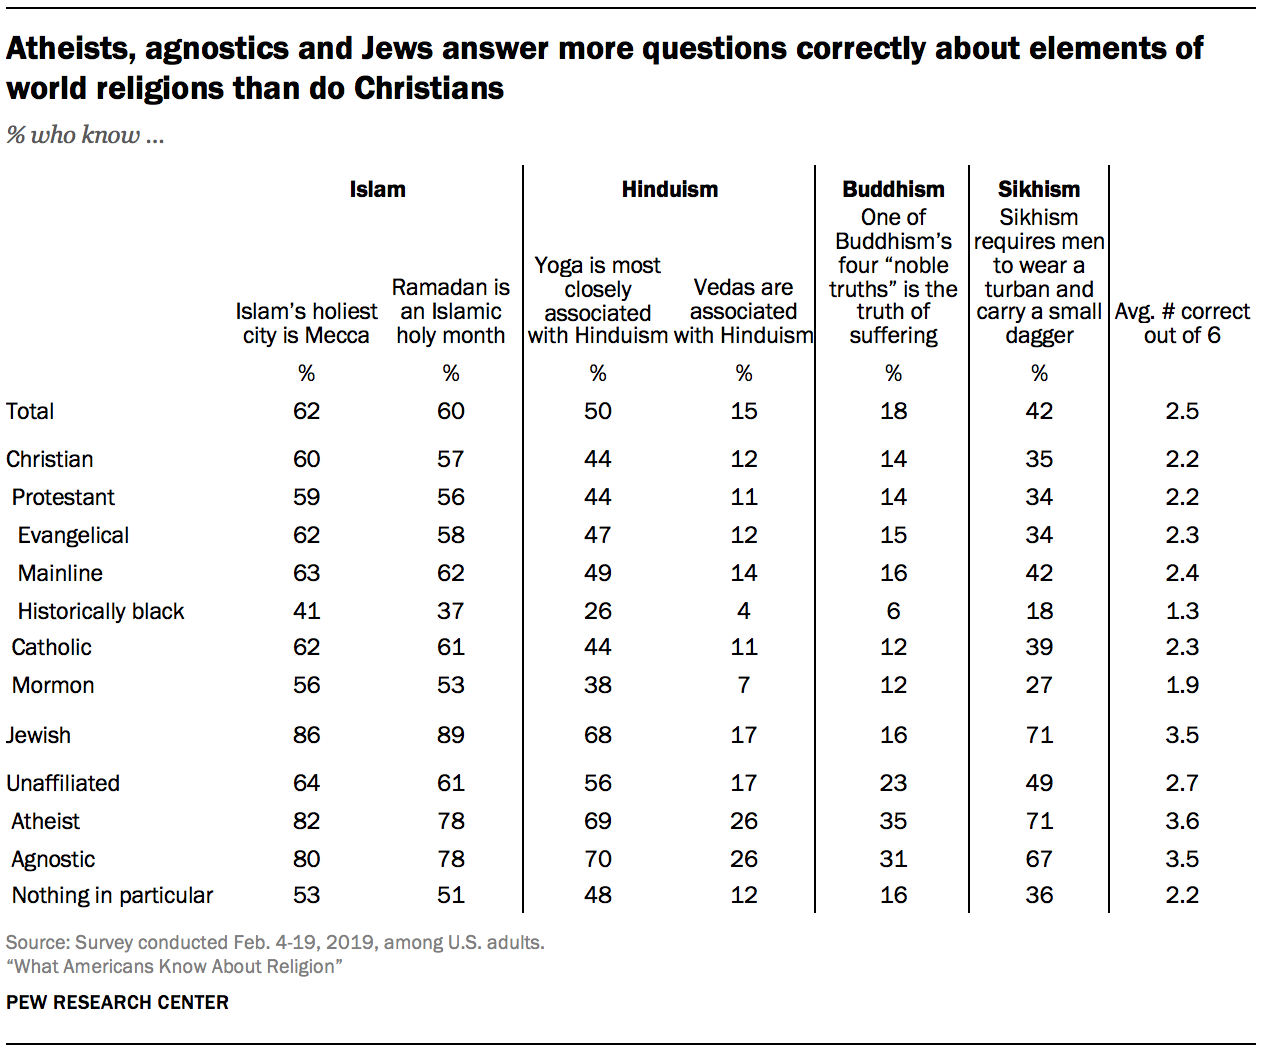 Atheists, agnostics and Jews answer more questions correctly about elements of world religions than do Christians